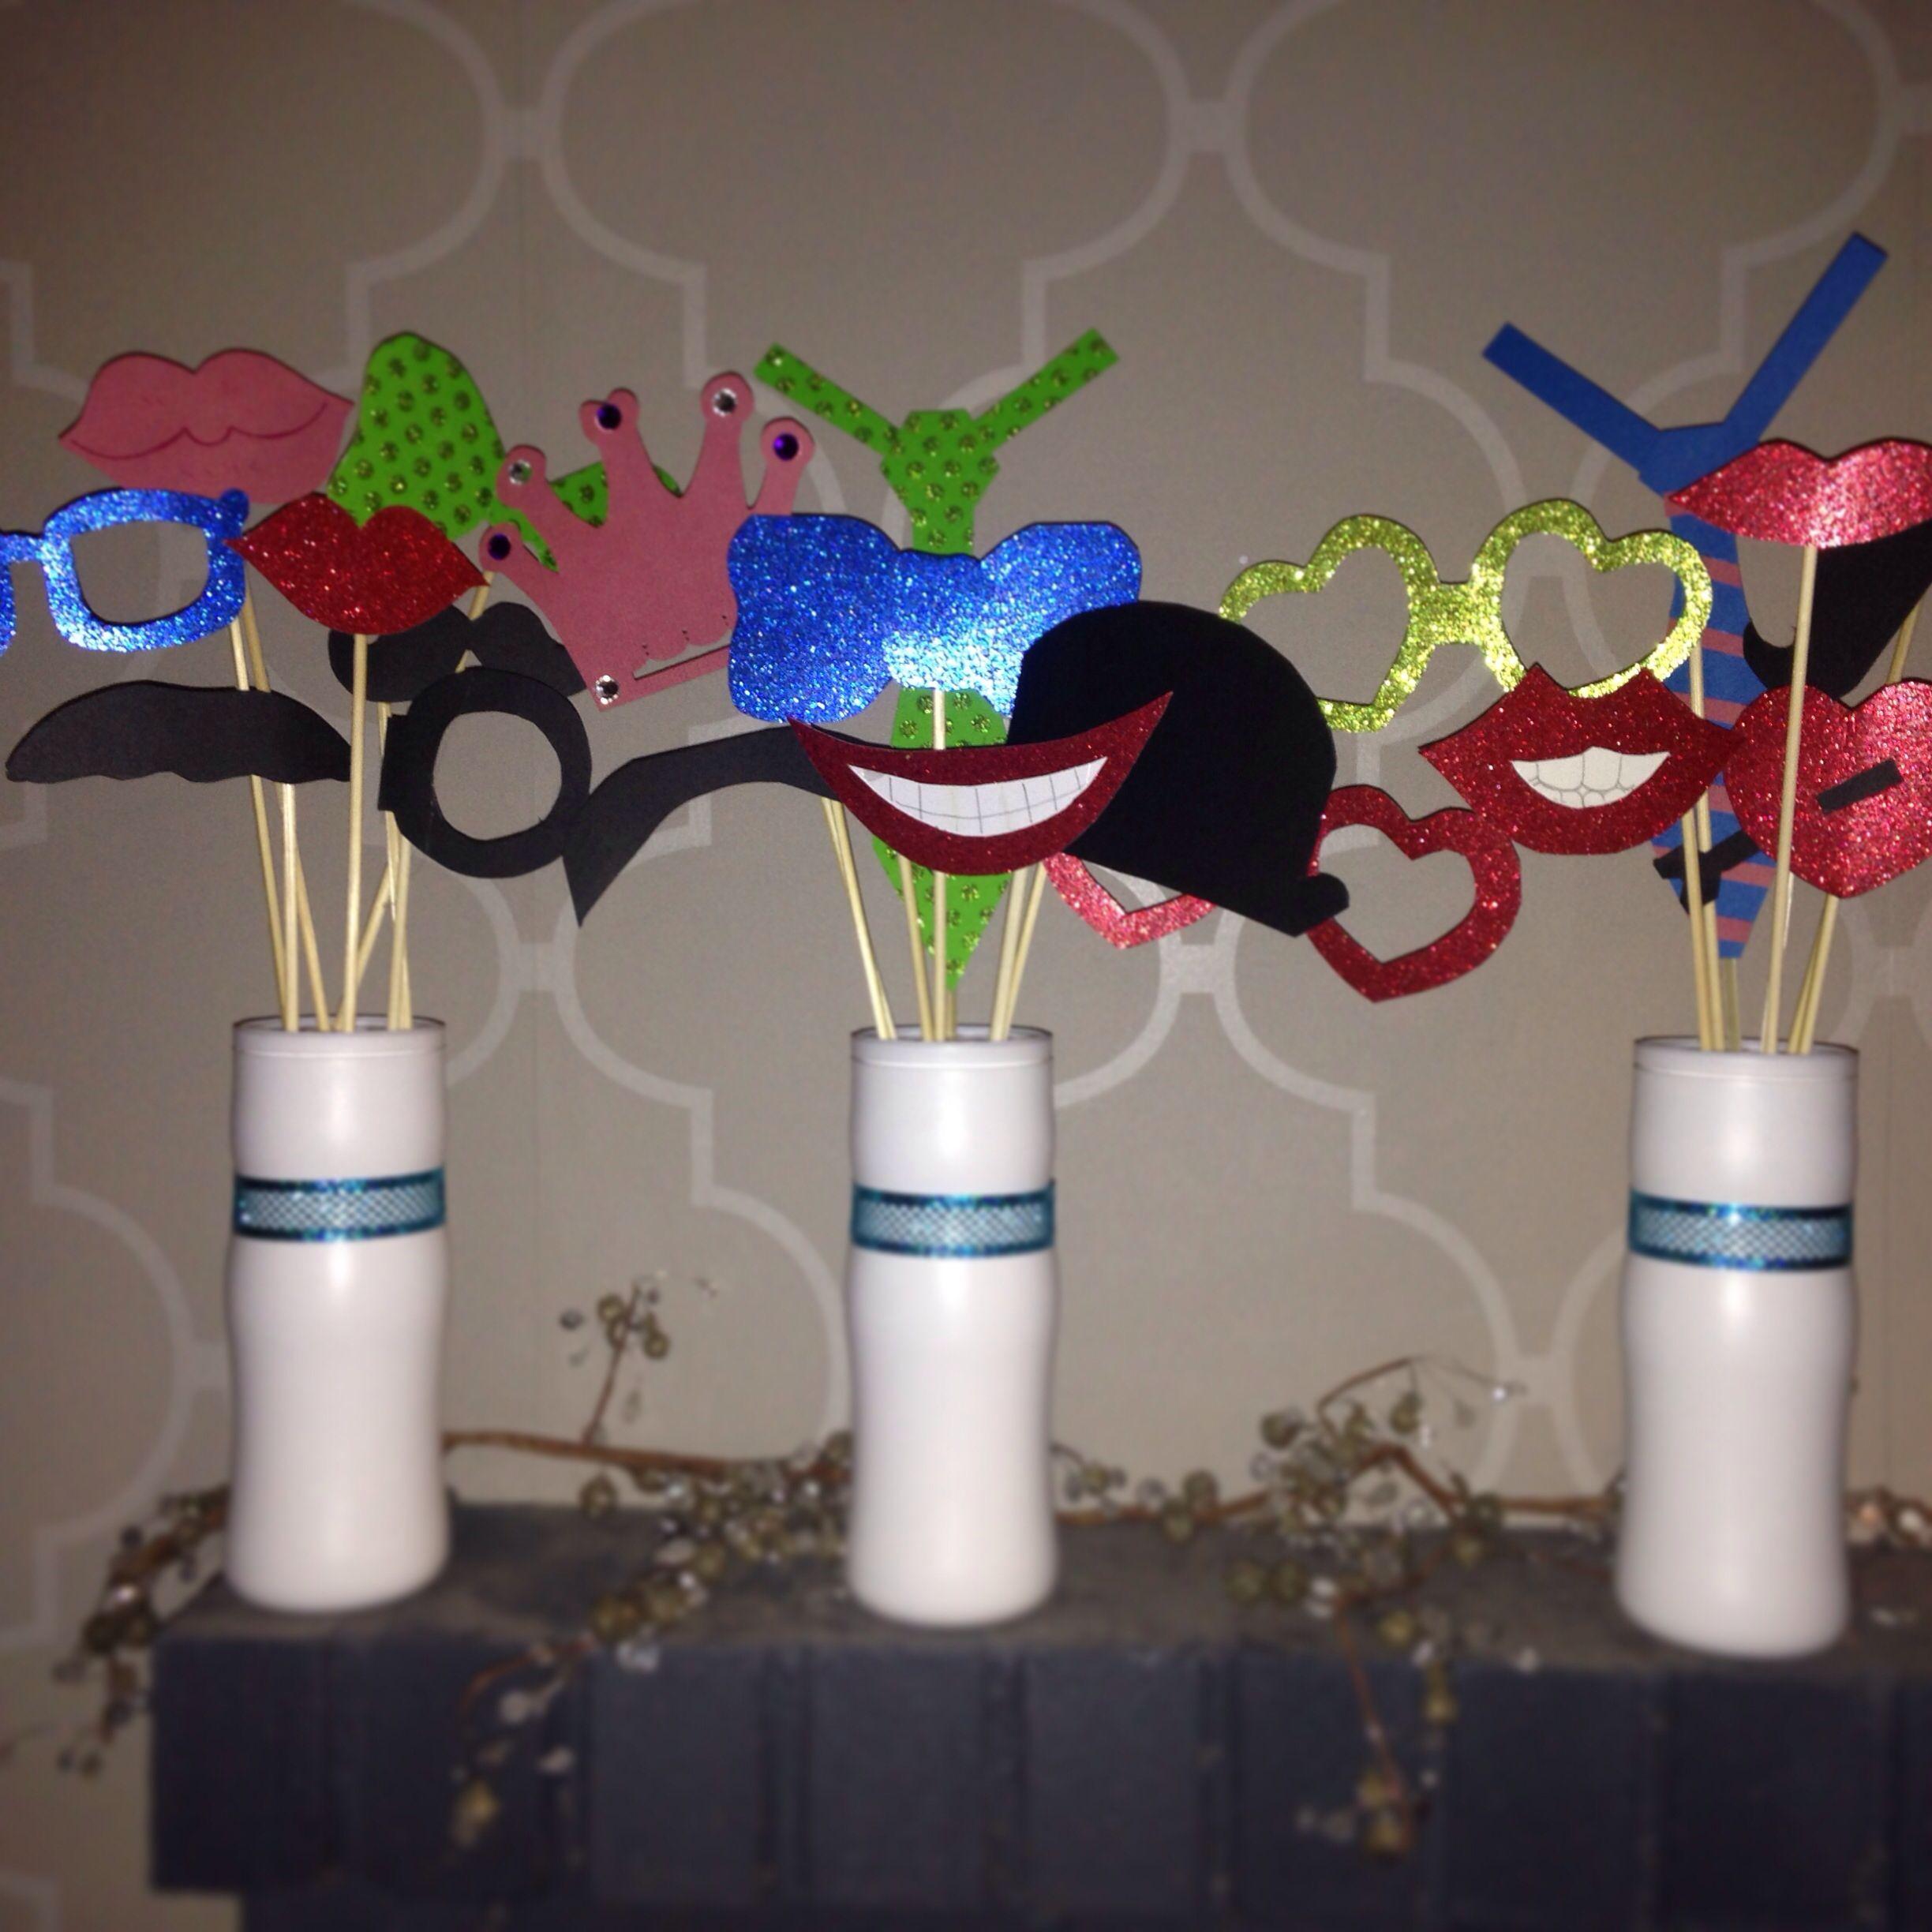 Photo Booth Props - DIY Props | cheer coach life. | Pinterest